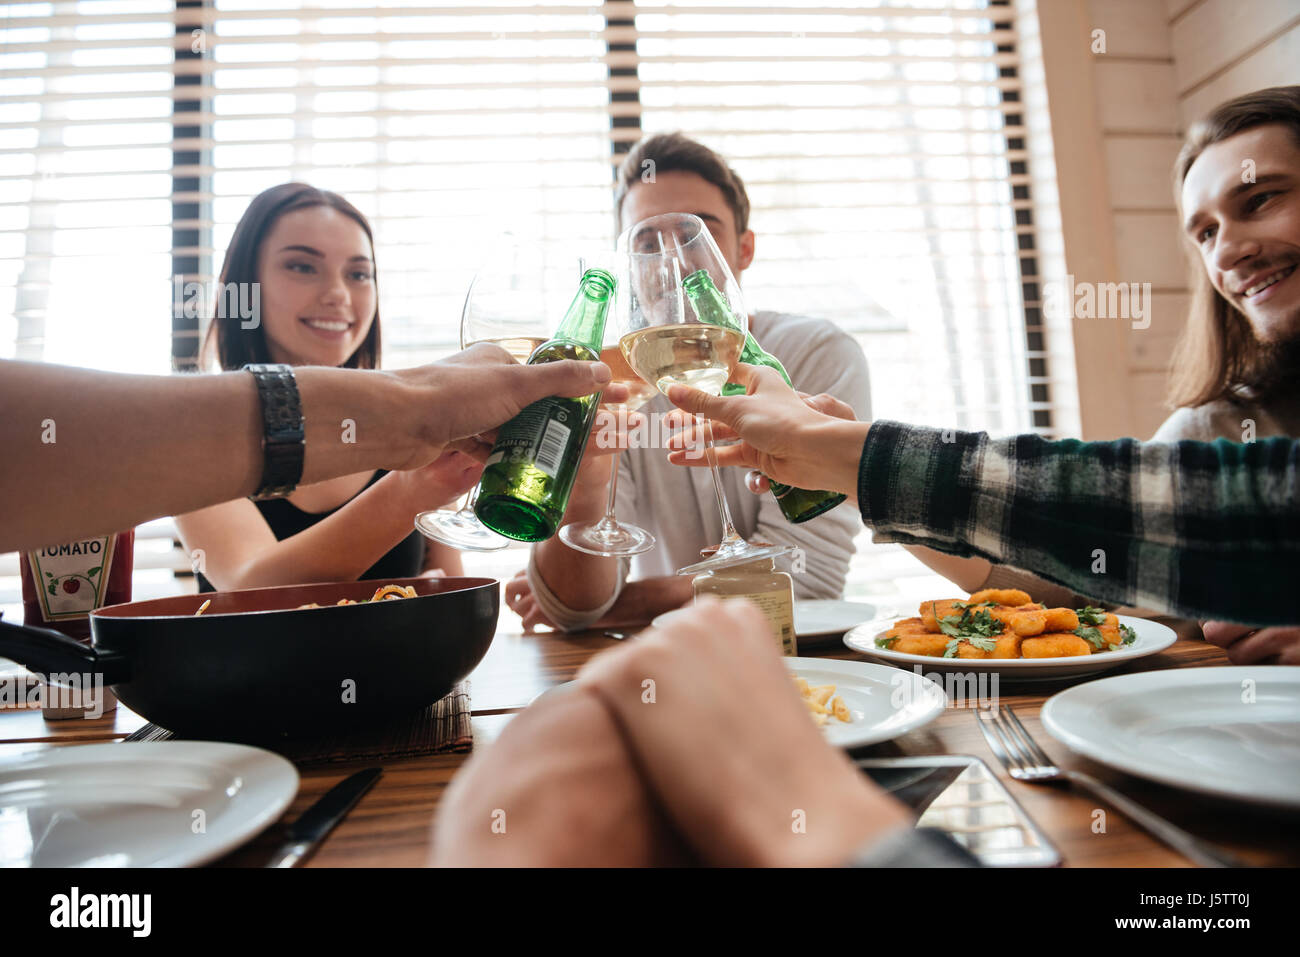 Side view of a group of young people saying cheers and eating healthy meals at party dinner table in cafe, restaurant - Stock Image